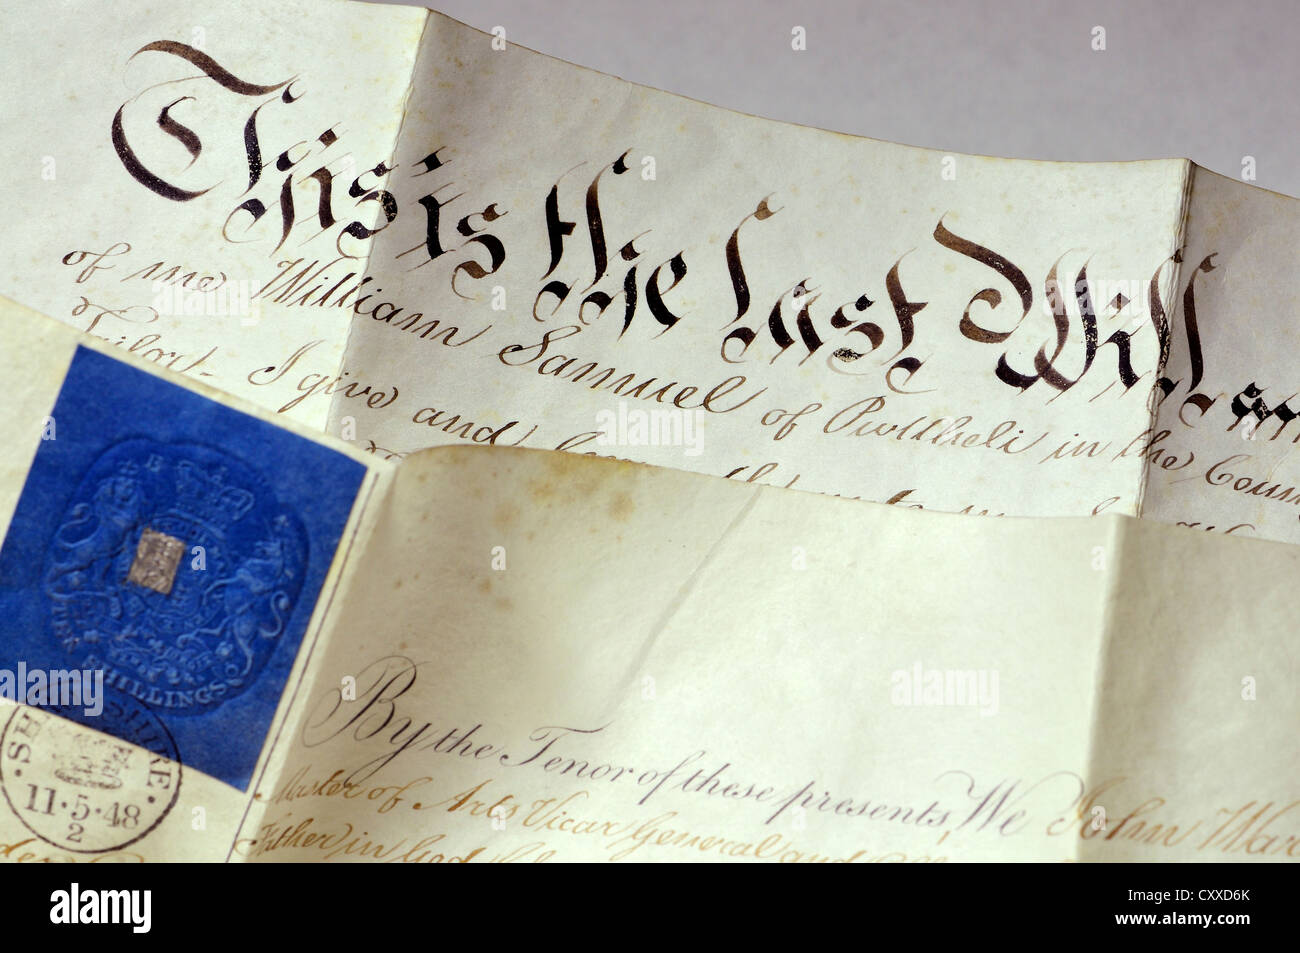 Probate document written on vellum. 17th May 1848; Last Will and Testament of William Samuel - Stock Image